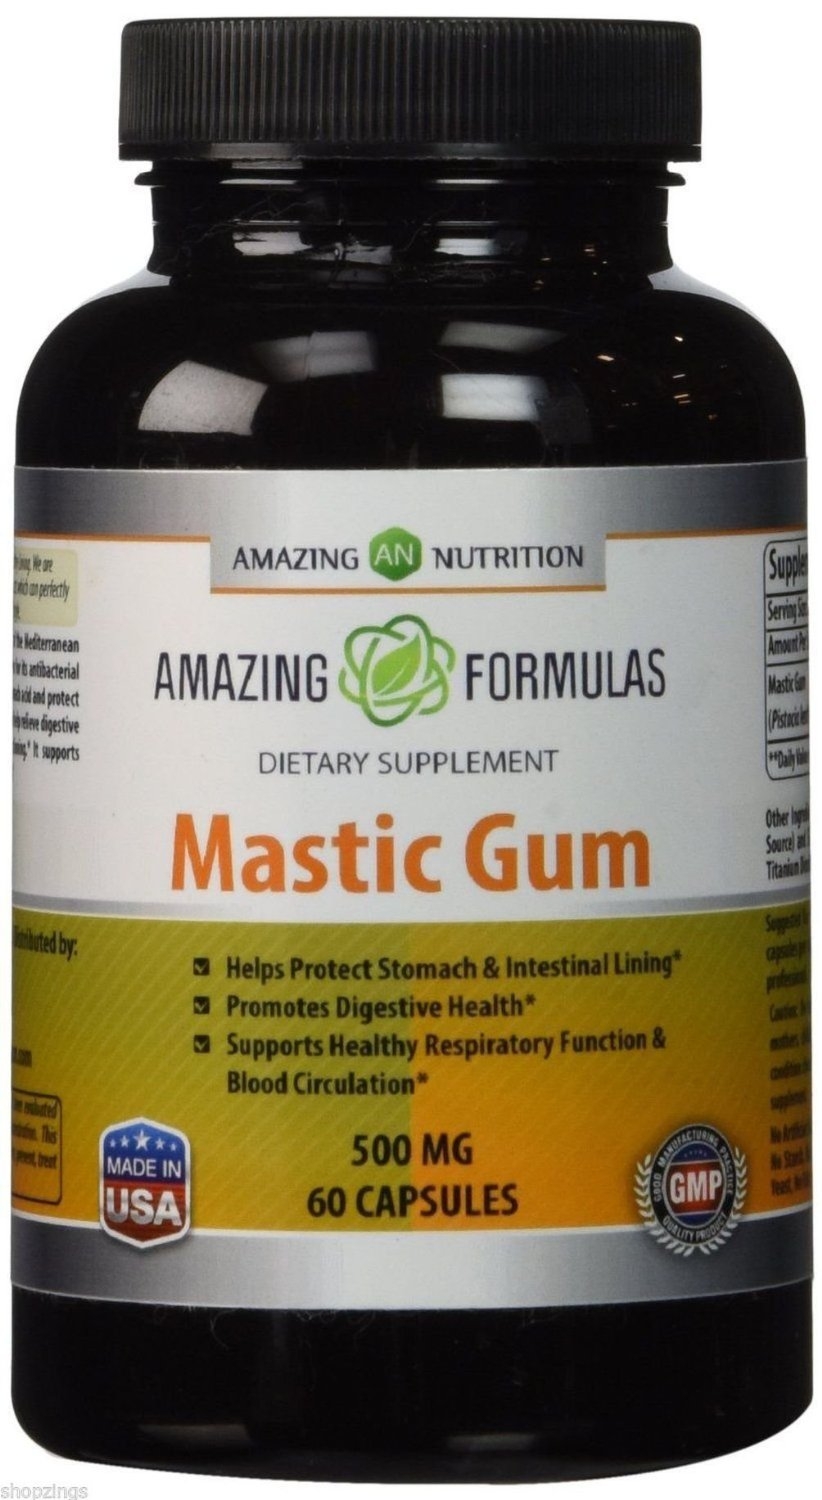 Amazing Nutrition Mastic Gum 500 mg 60 Capsules. Supplement Stomach Ulcer Health